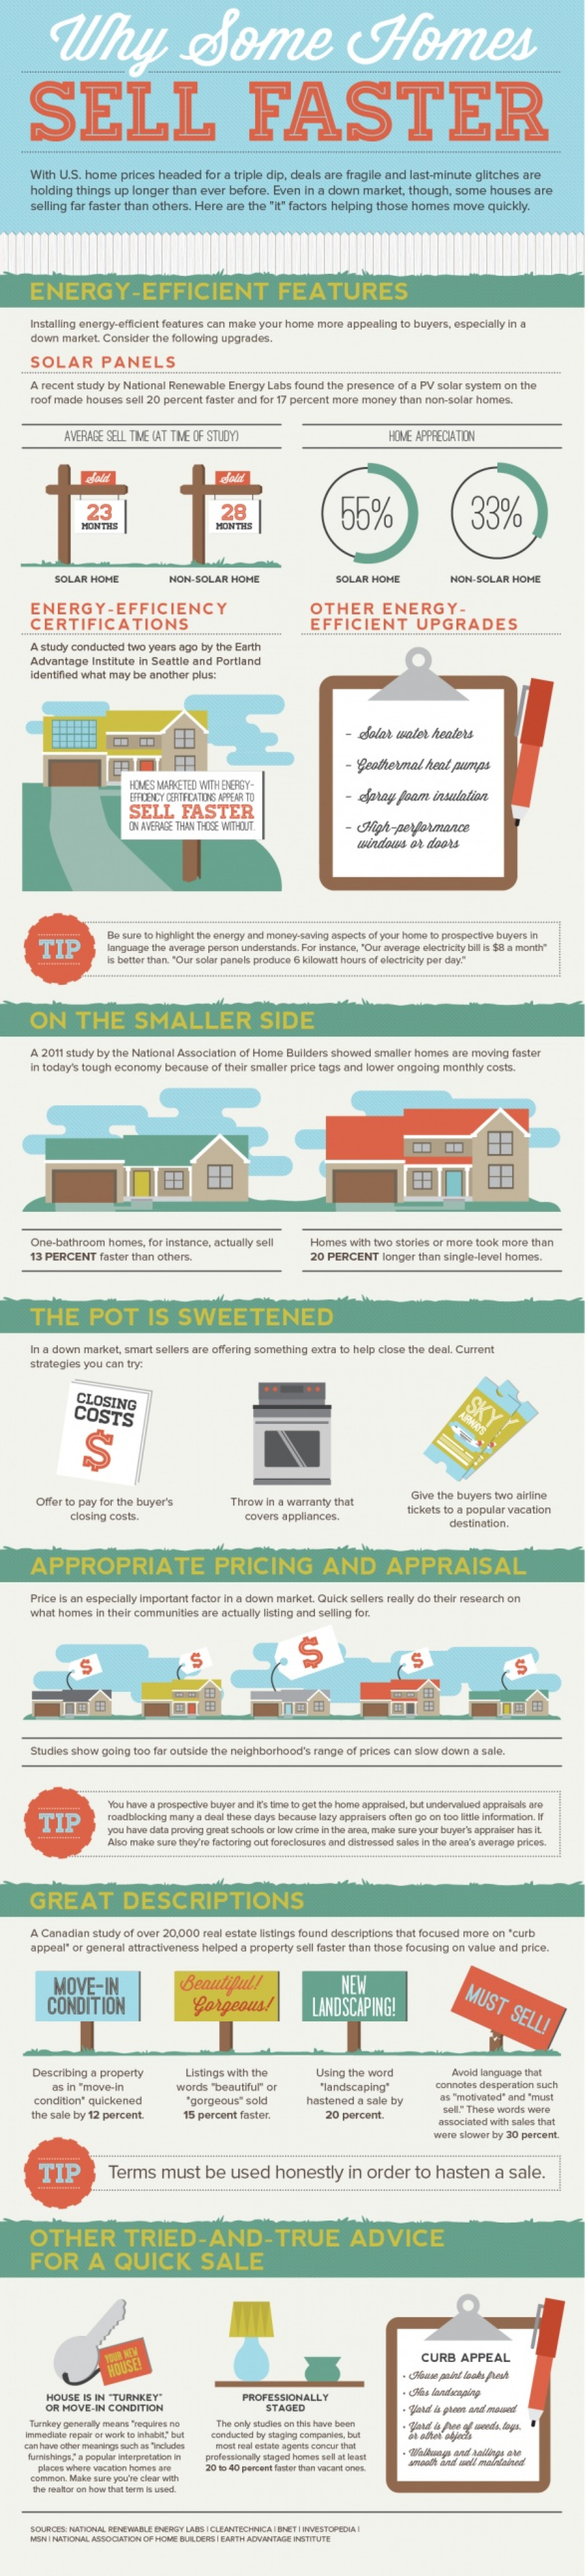 How Some Homes Sell Faster Infographic